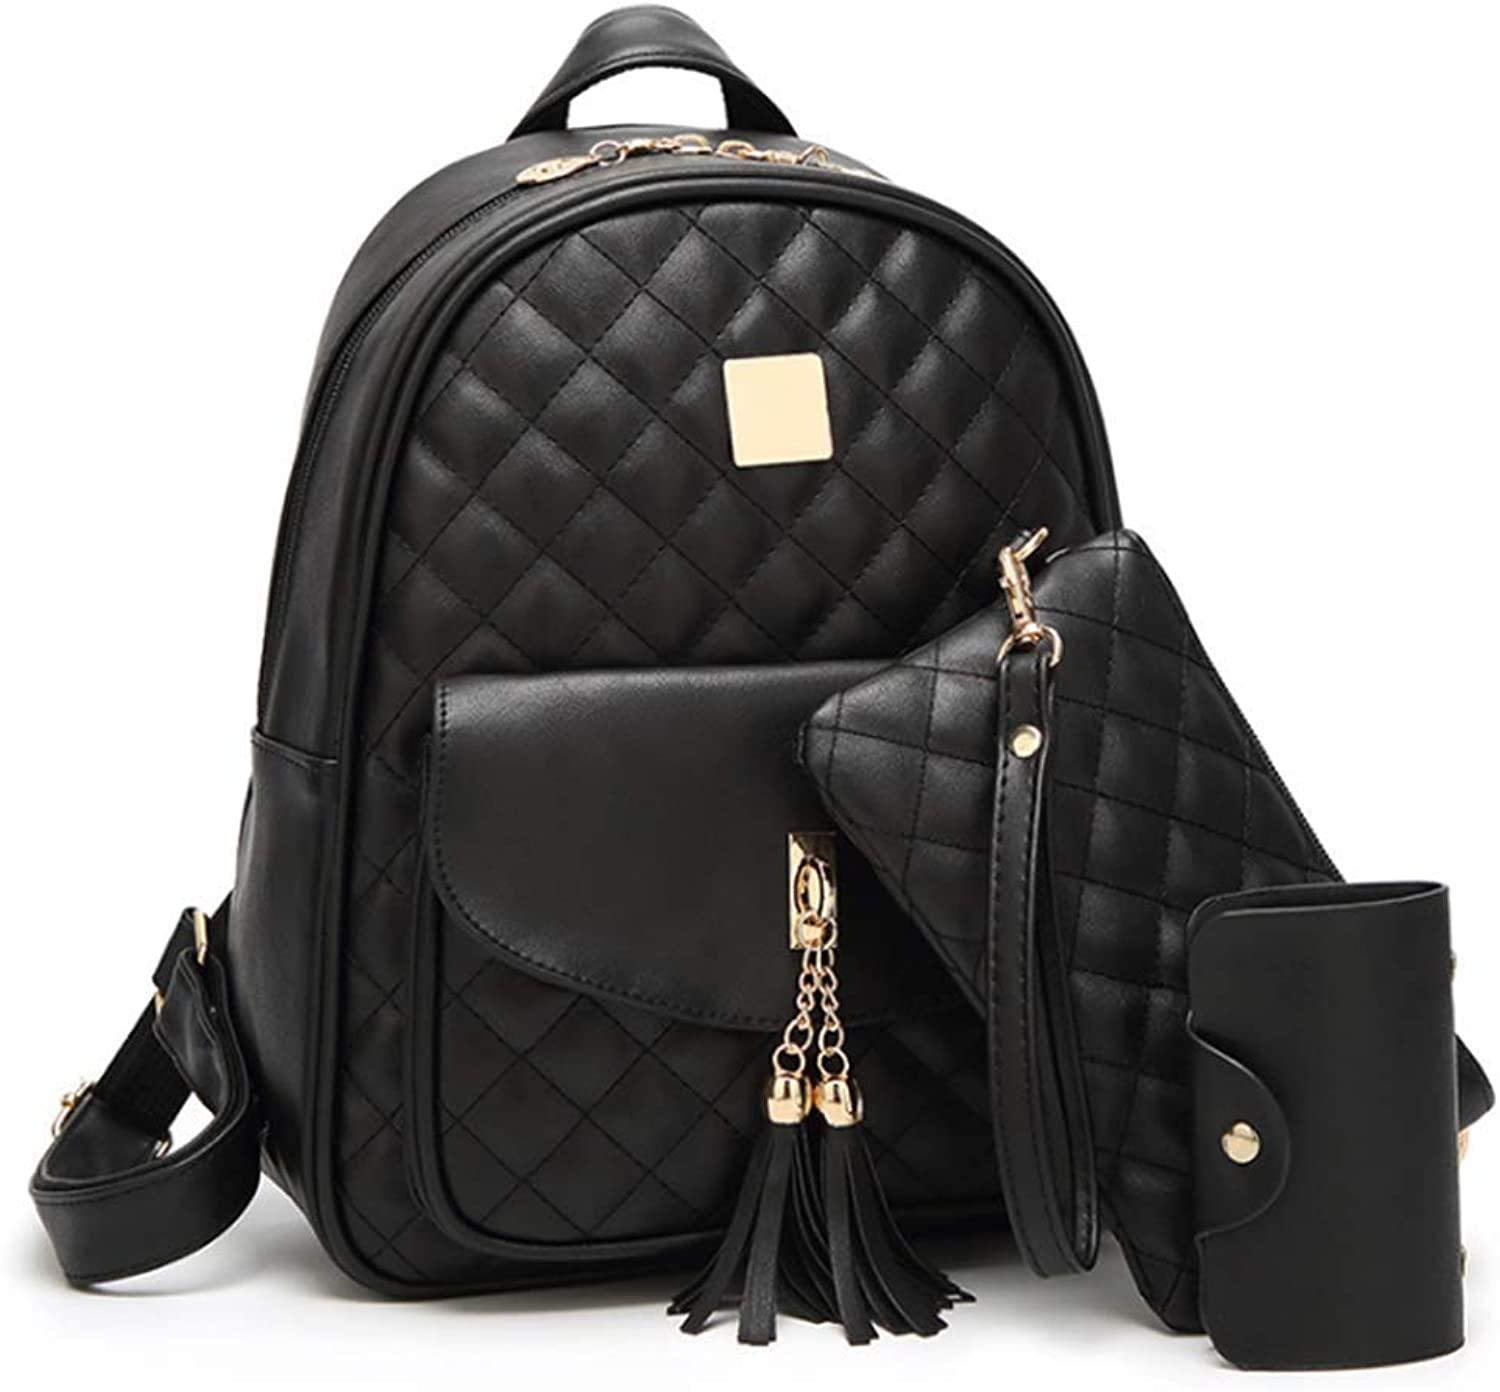 Casual Tassel Backpack for Women Fashion Shoulder Bag Travel Daypack School Rucksack with Purse and Card Bag